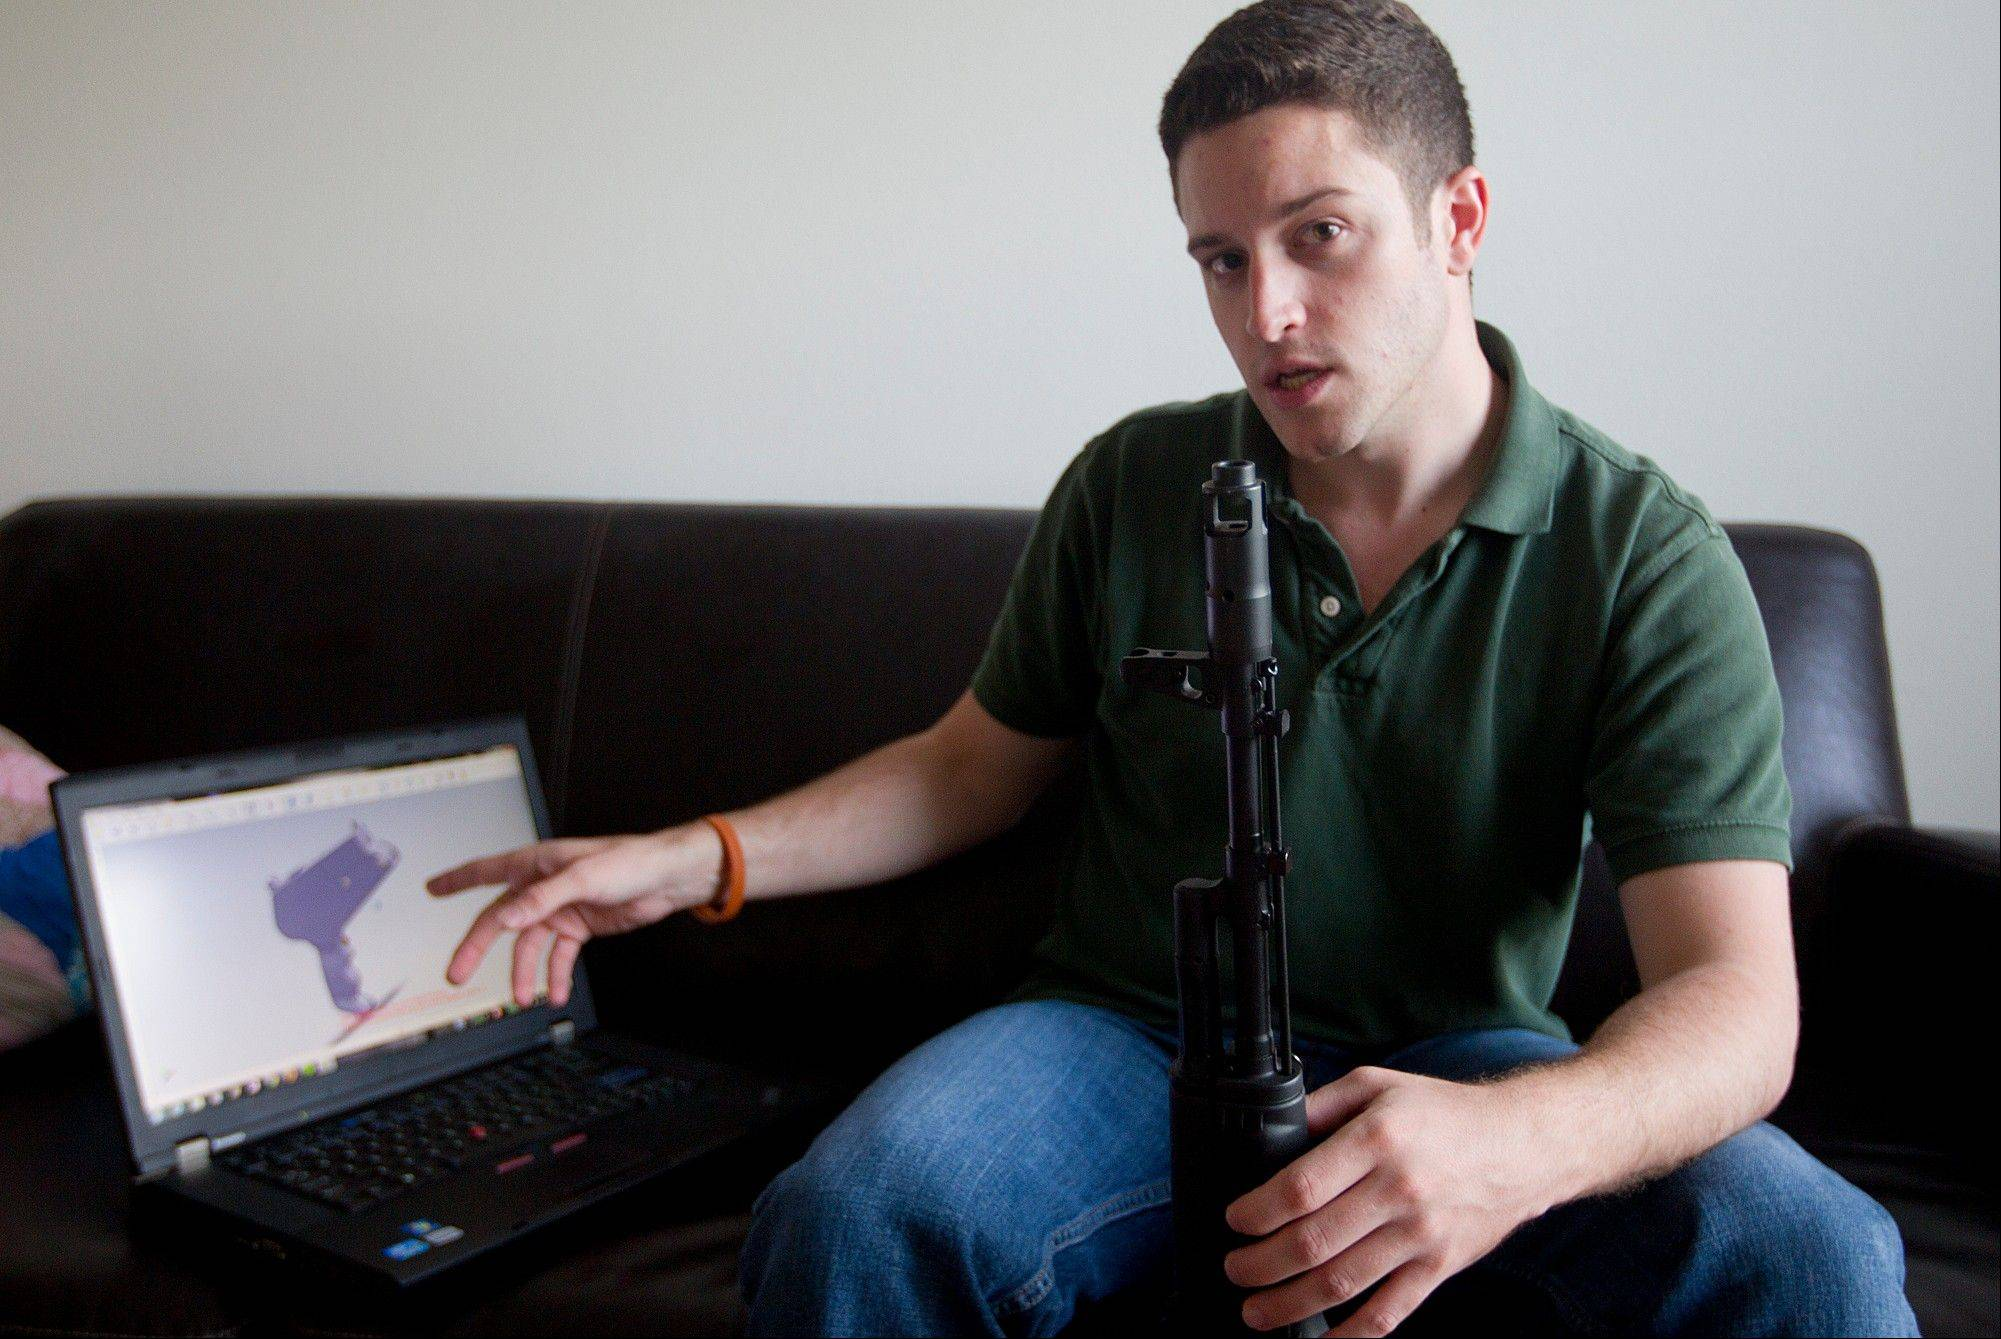 """Wiki Weapons"" project leader Cody Wilson points to his laptop screen displaying an image of a prototype plastic gun on the screen, while holding in his other a weapon he calls ""Invivdual Mandate,"" in Austin, Texas."